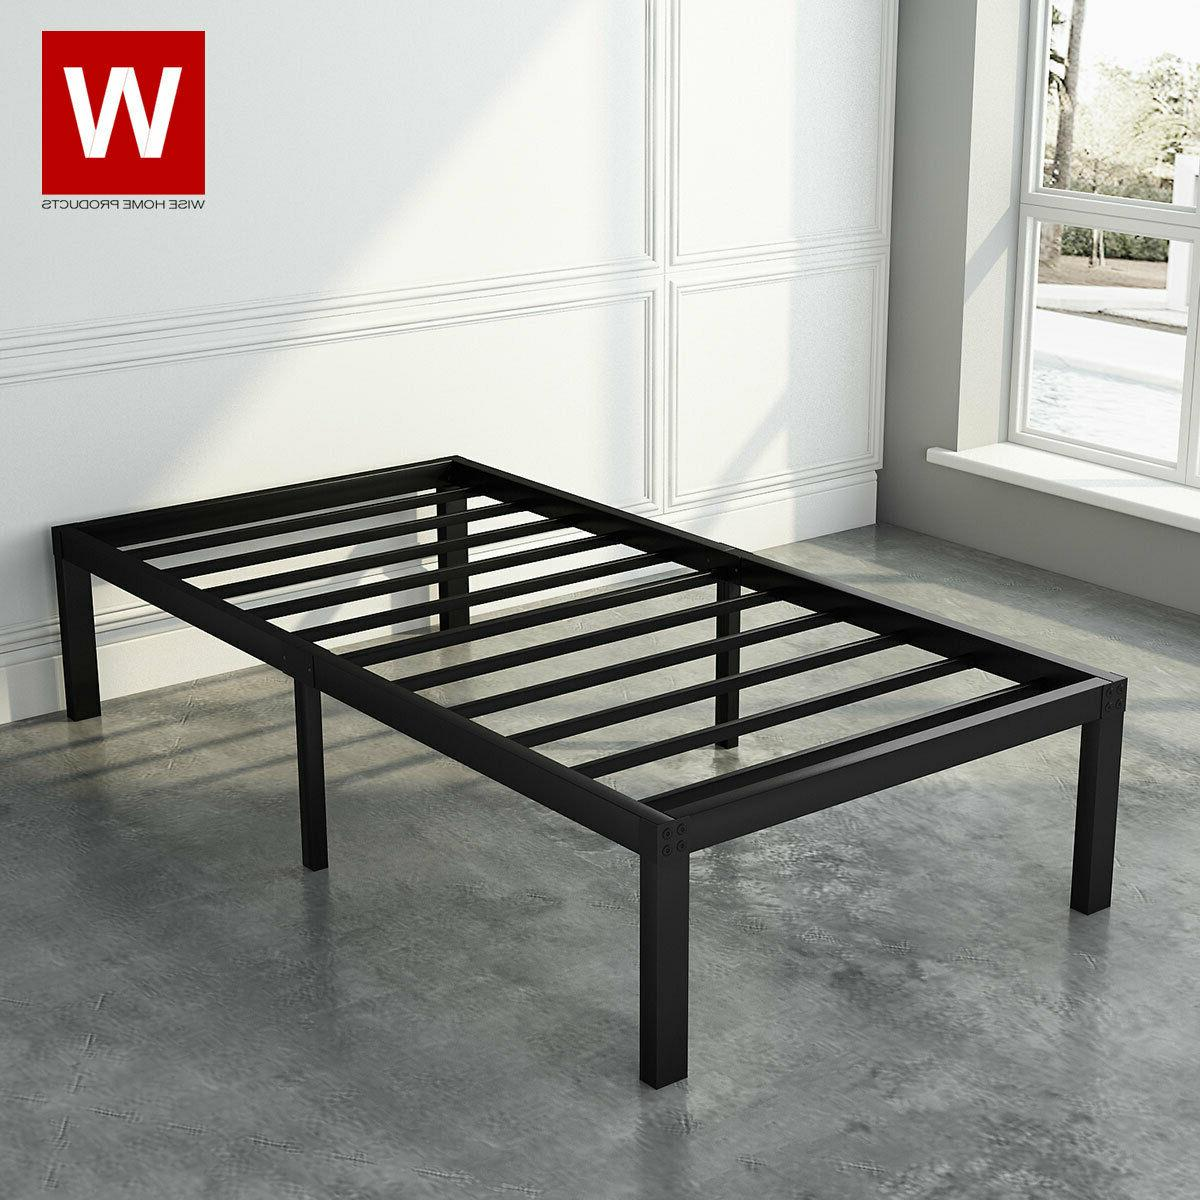 Twin Steel Bed Frame Metal Platform Beds with Heavy Duty Ste